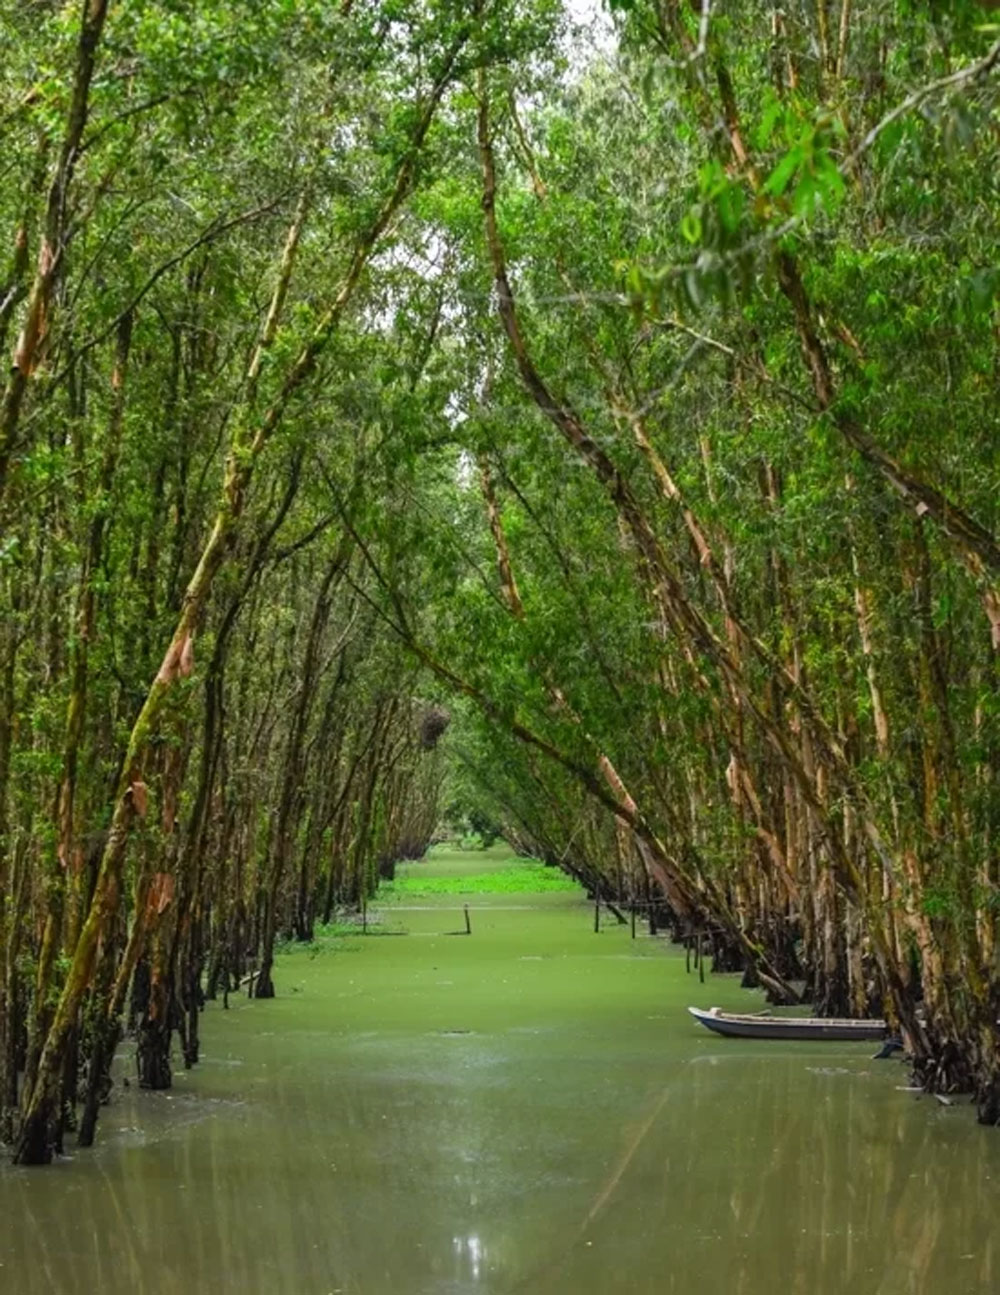 Get into the flow, Mekong Delta, mangrove forest, Tra Su,  long waterways,  flooding season